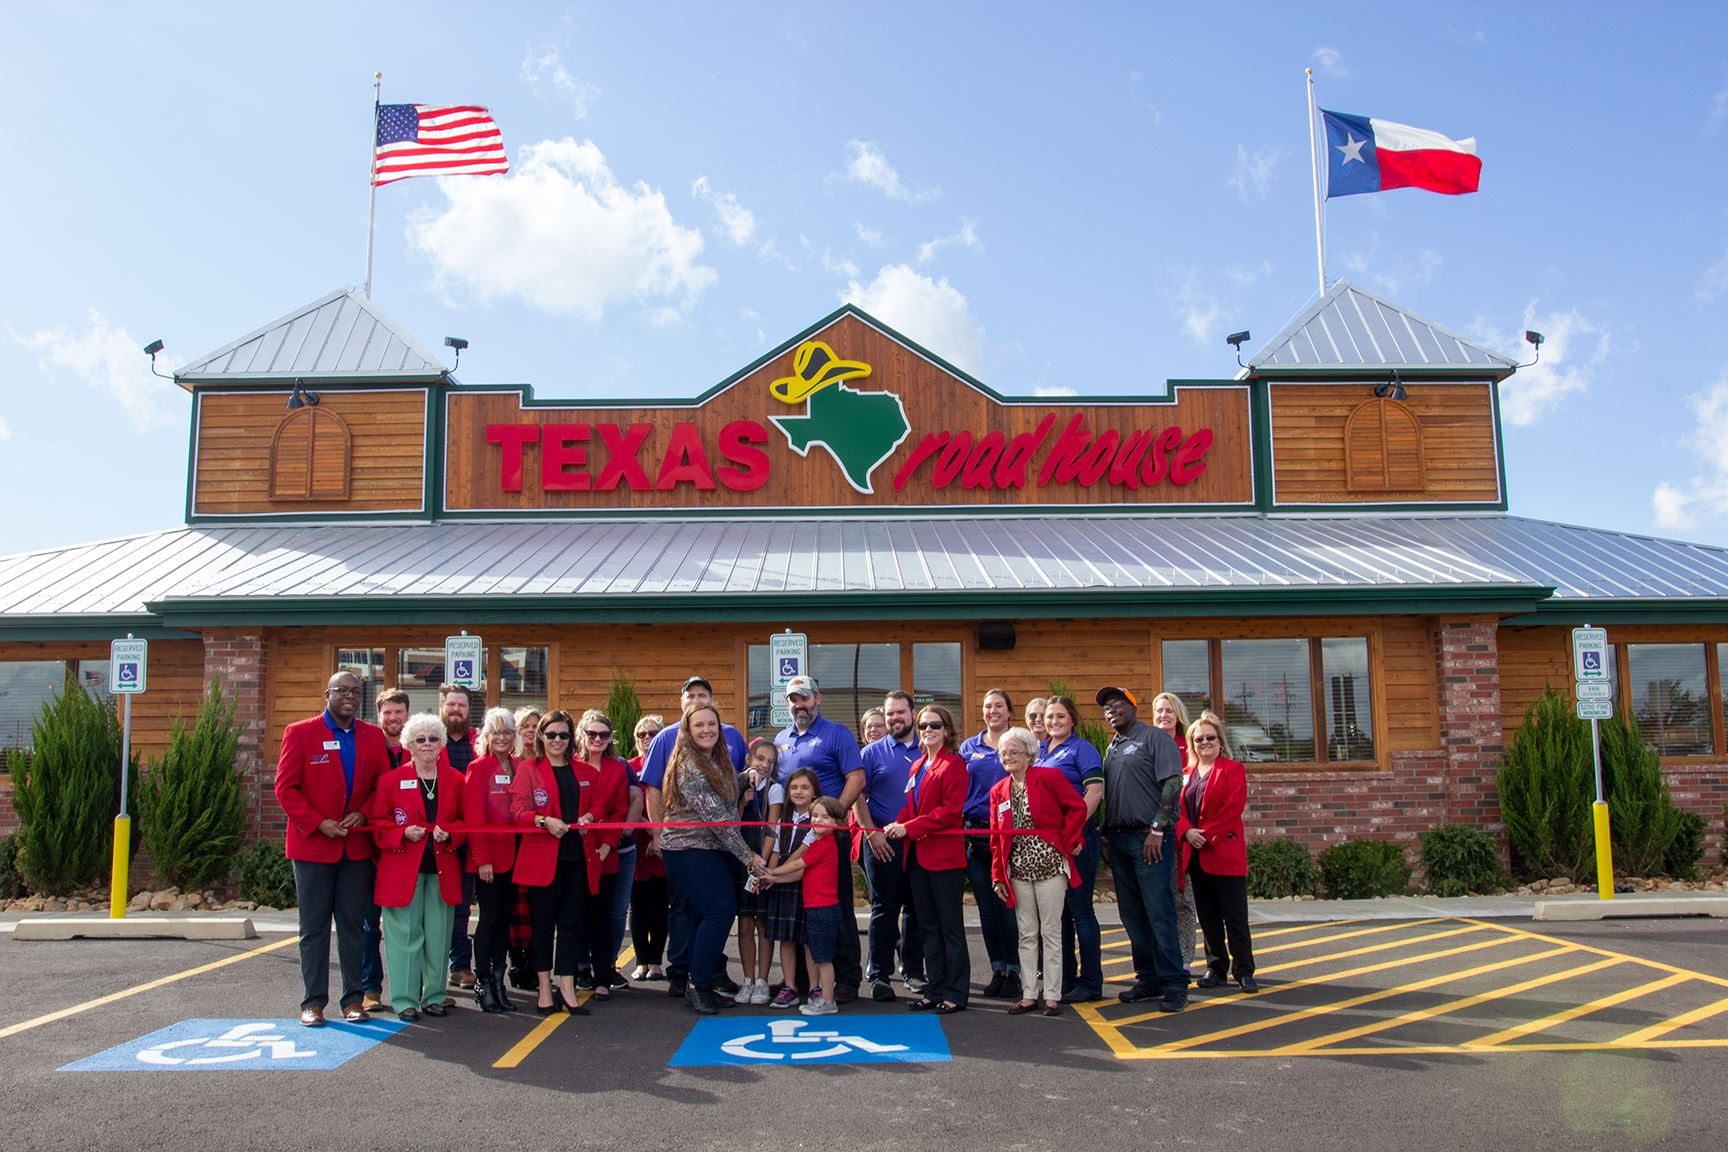 Texas Roadhouse ribbon cutting in front of restaurant